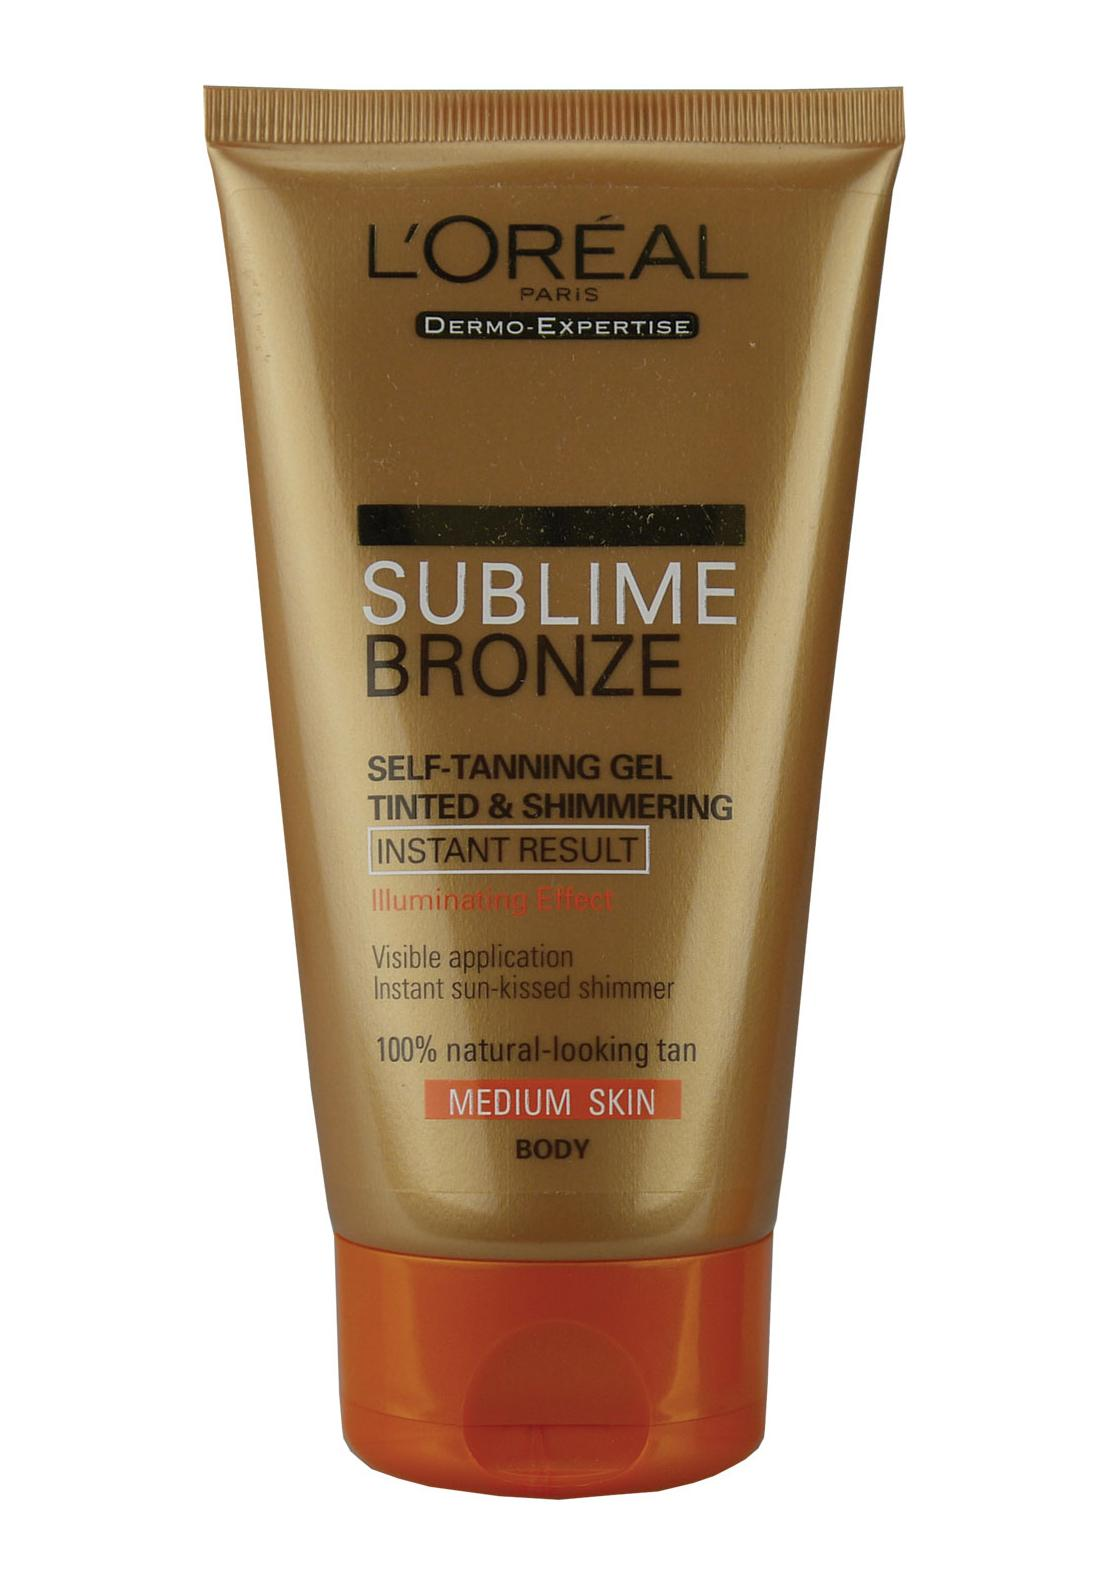 L'Oreal Sublime Bronze Self-Tanning Body Gel, Medium Skin